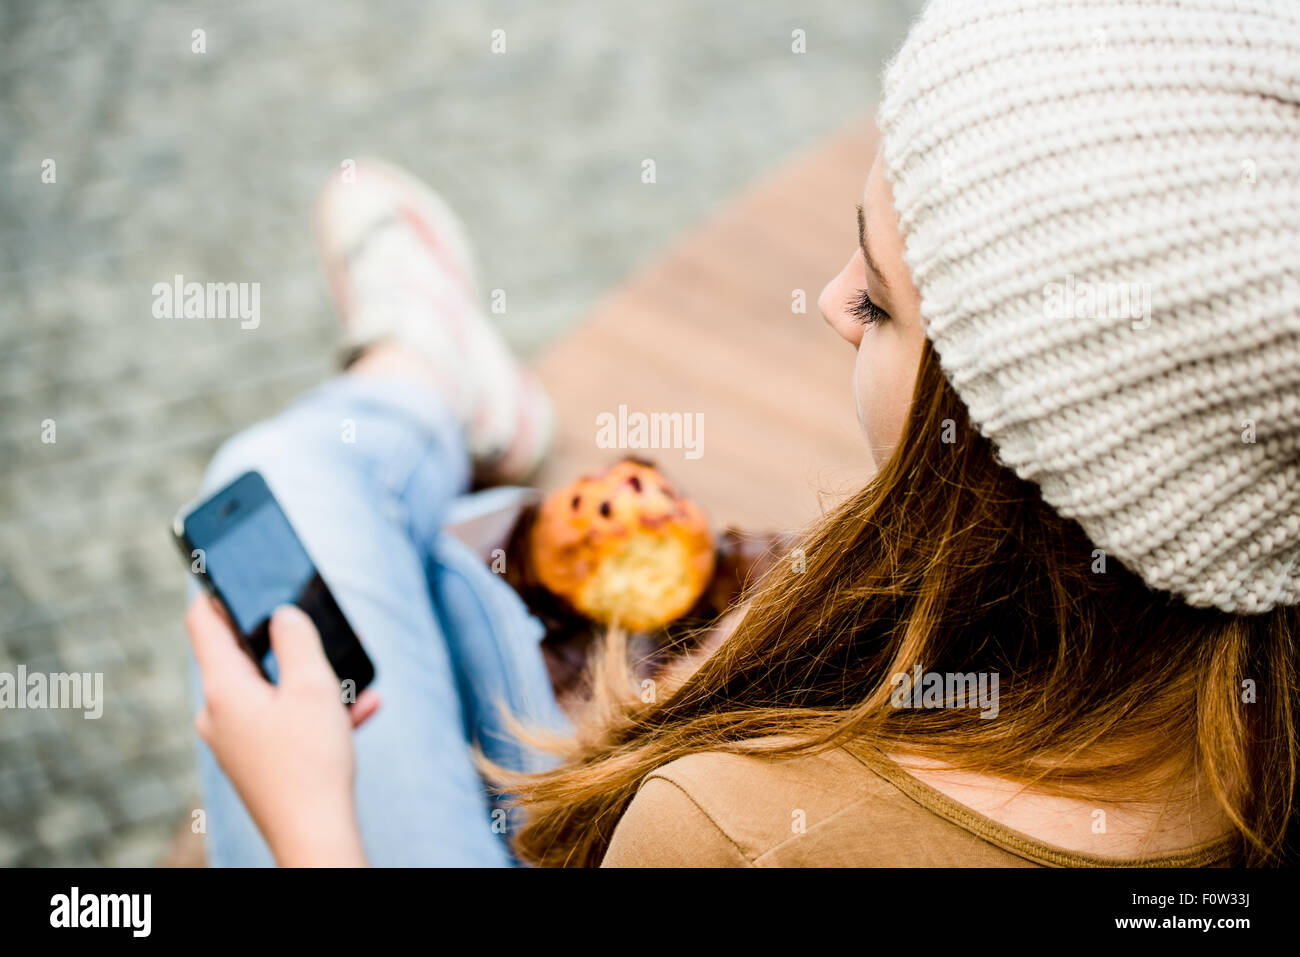 Teenager - young woman eating muffin in street and looking in phone - Stock Image